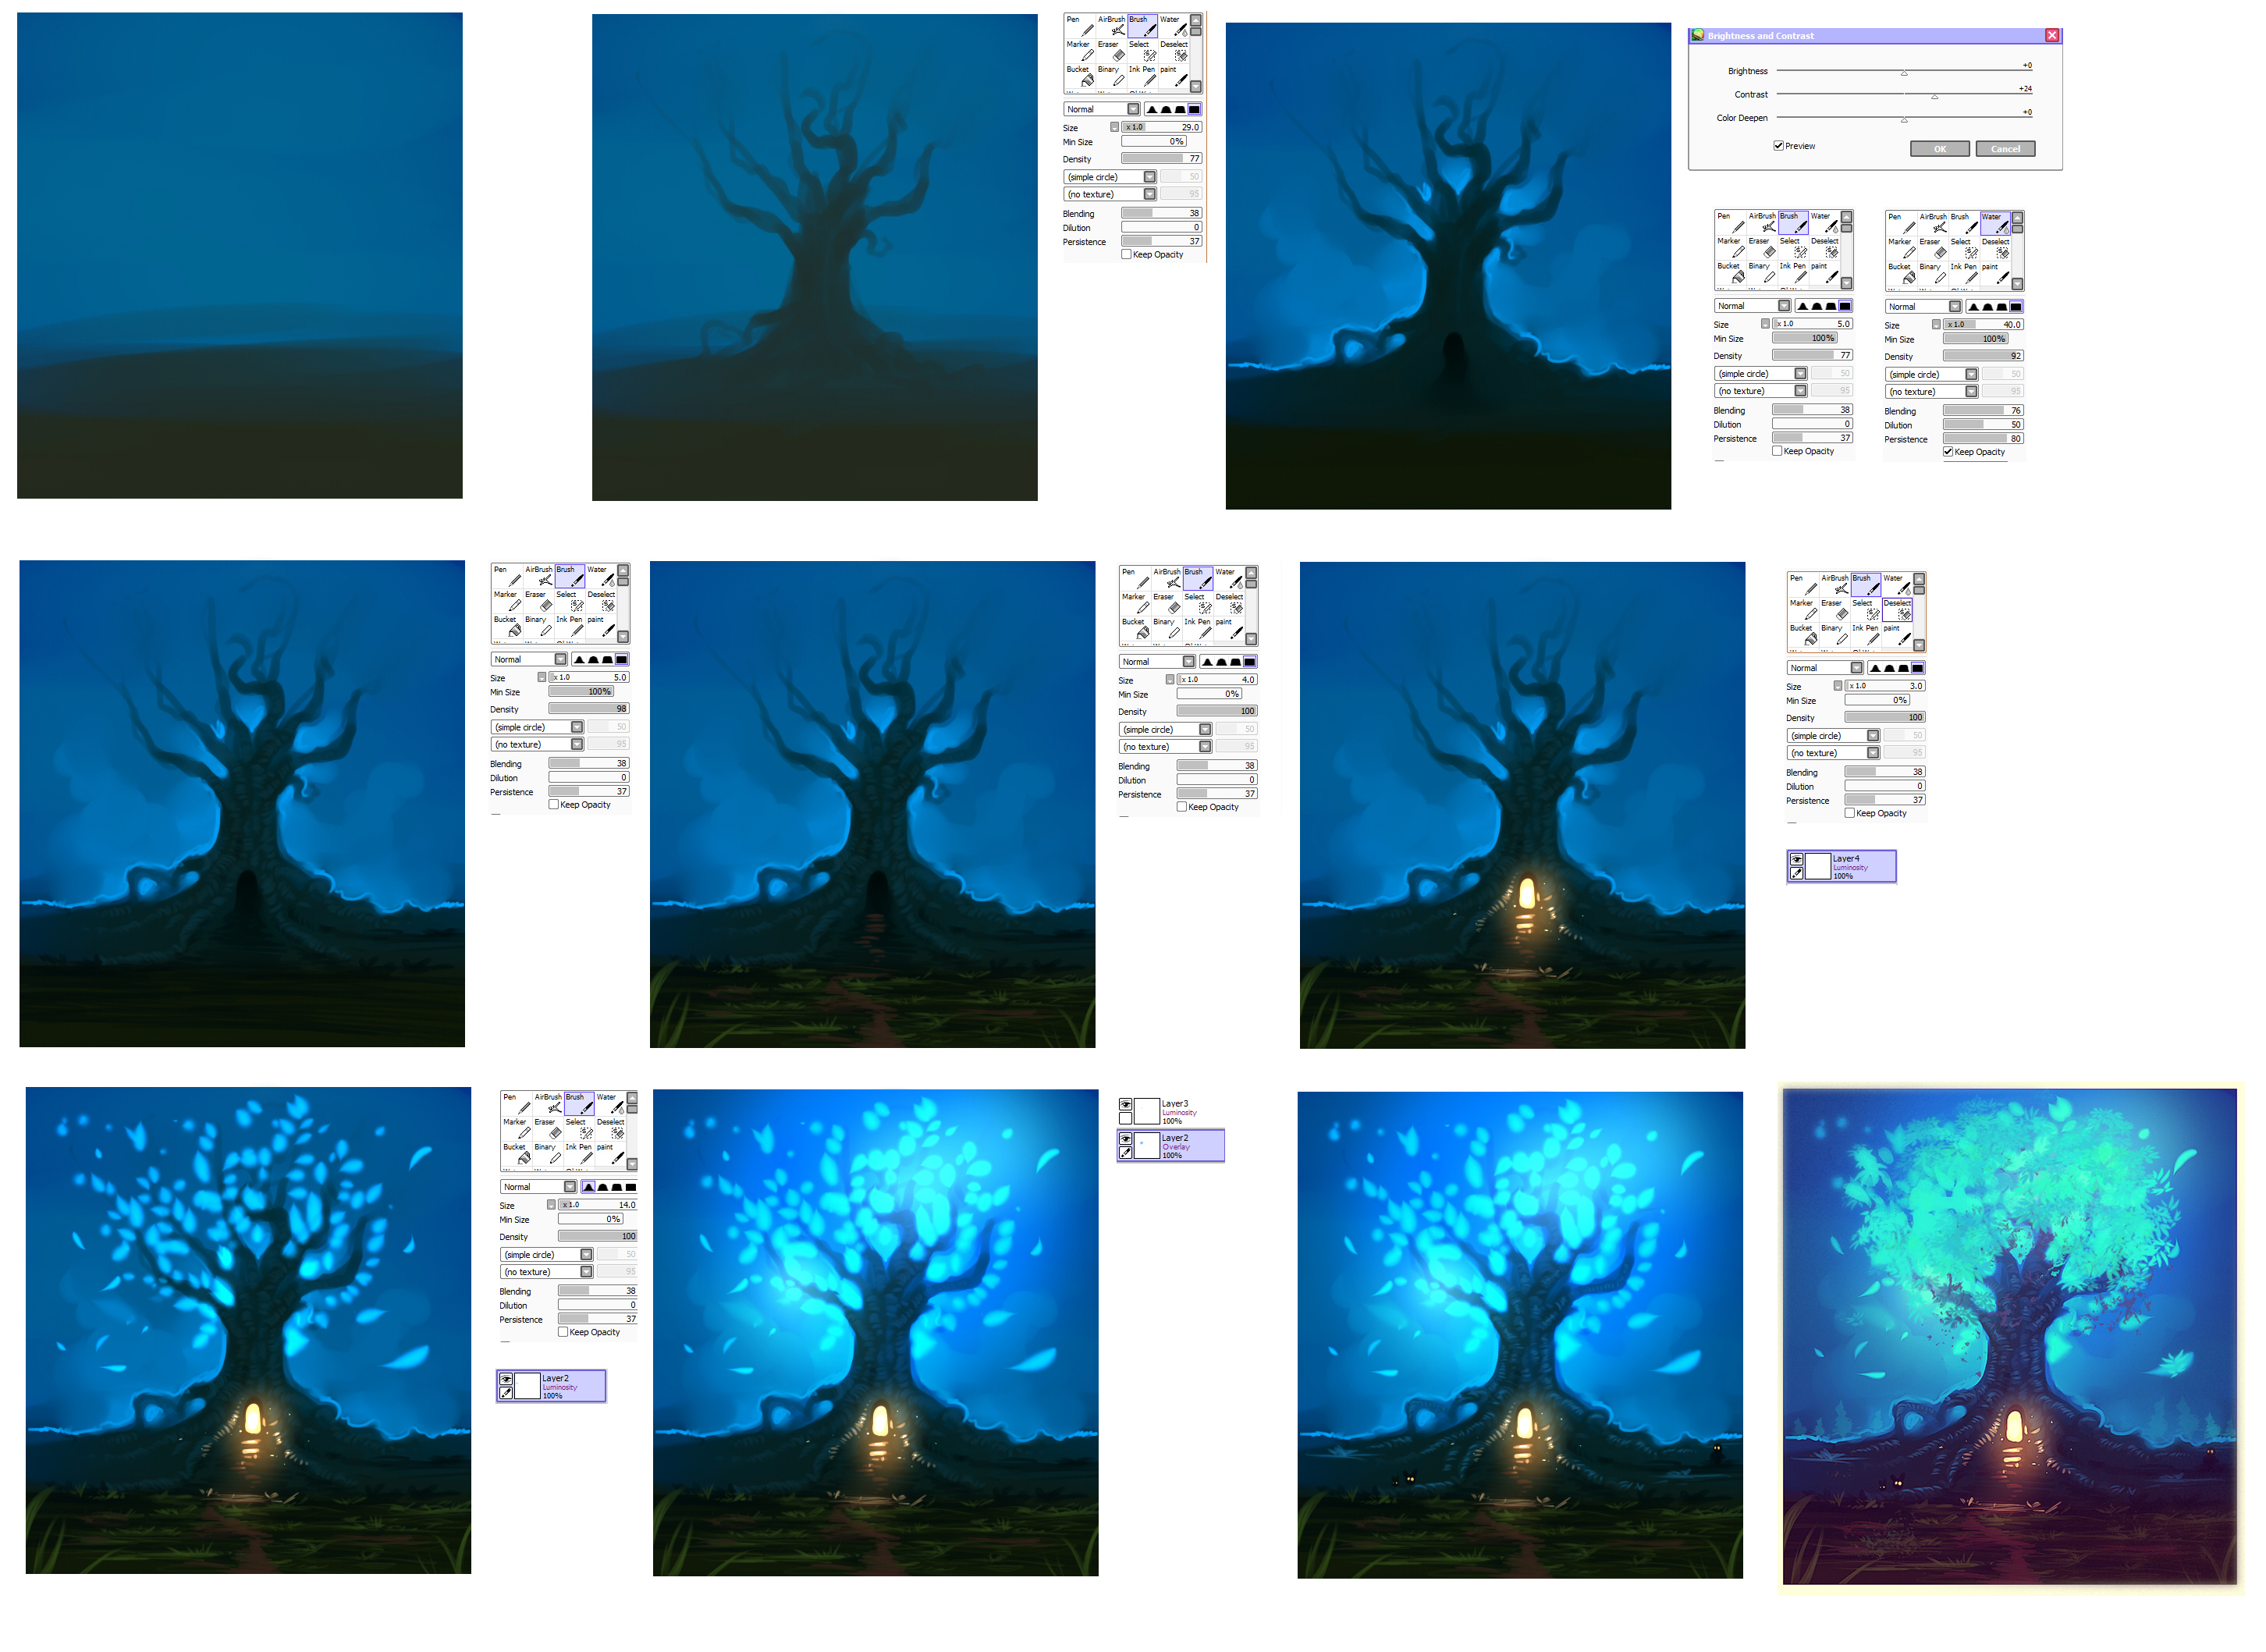 Magic tree step by step tutorial by ryky on deviantart for Space tutorial